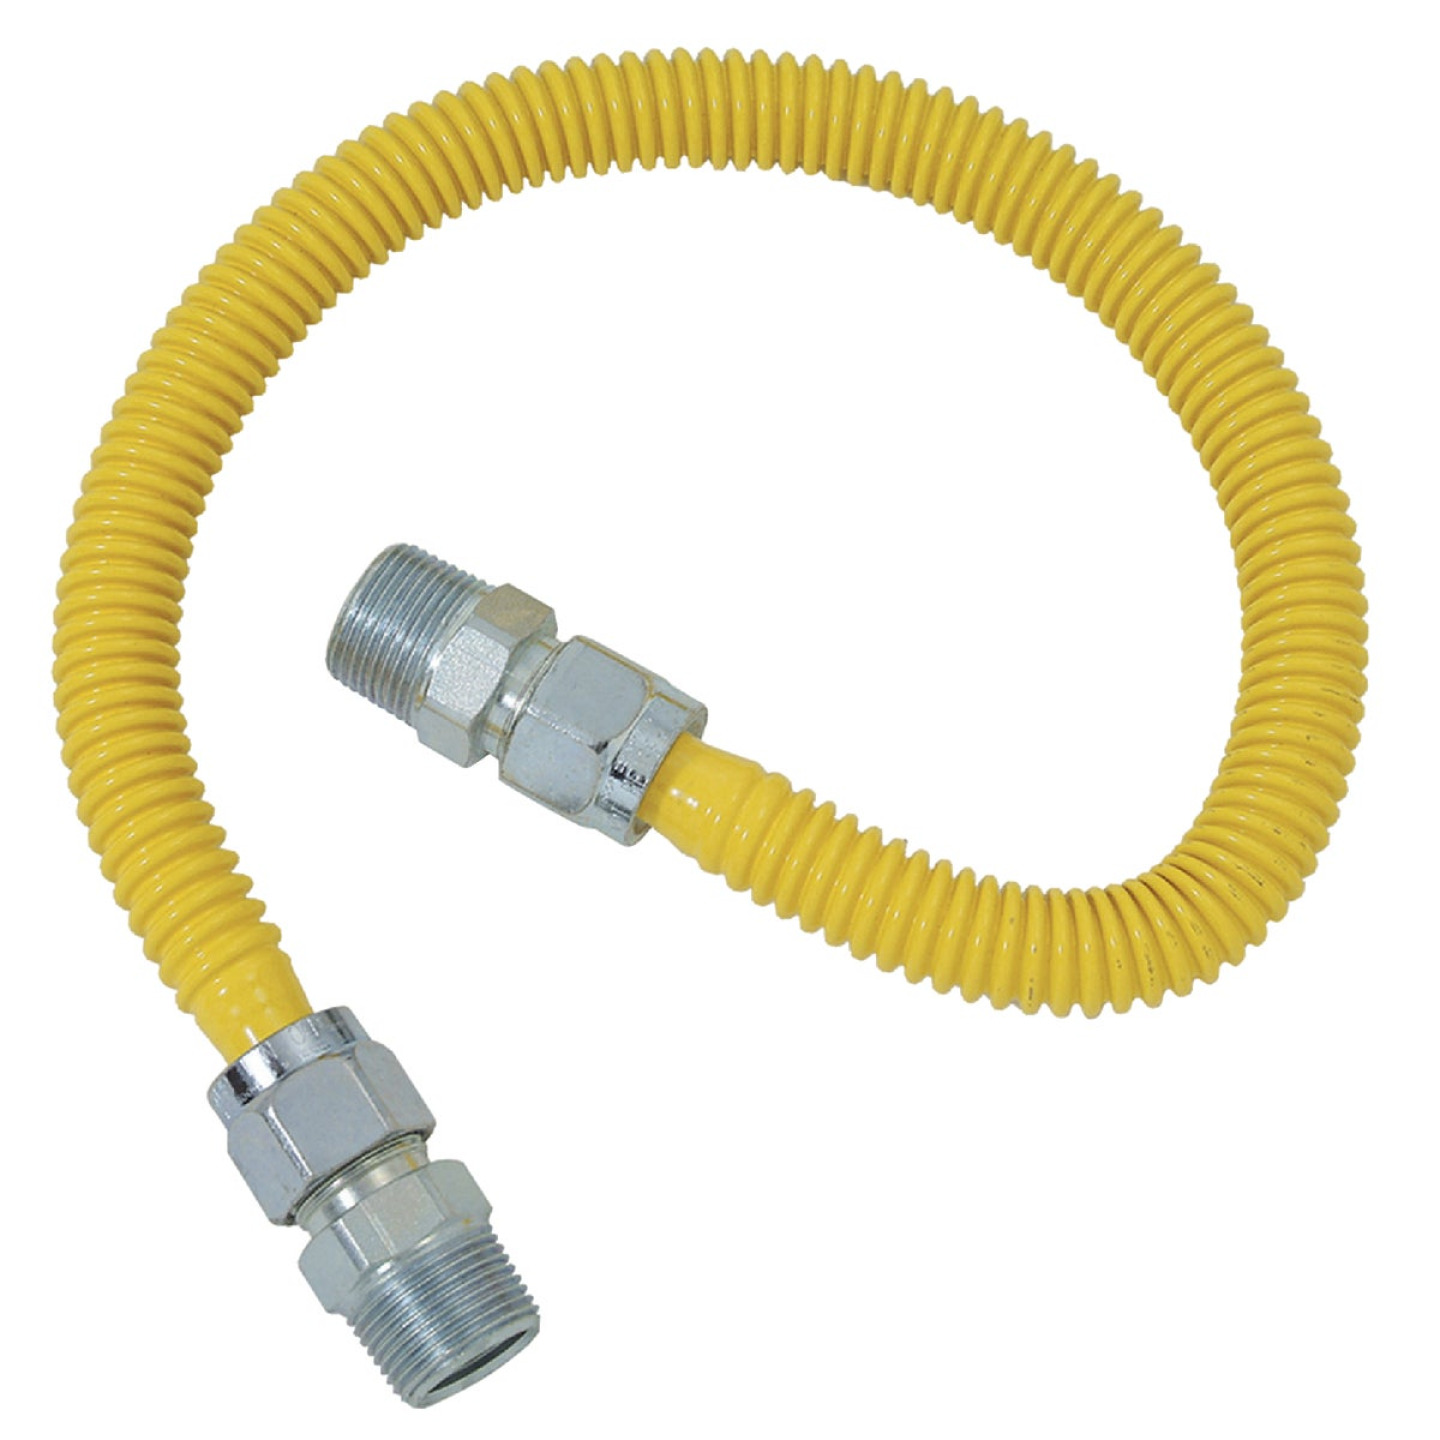 Dormont 5/8 In. OD x 60 In. Coated Stainless Steel Gas Connector, 3/4 In. MIP x 1/2 In. MIP (Tapped 3/8 In. FIP) Image 1